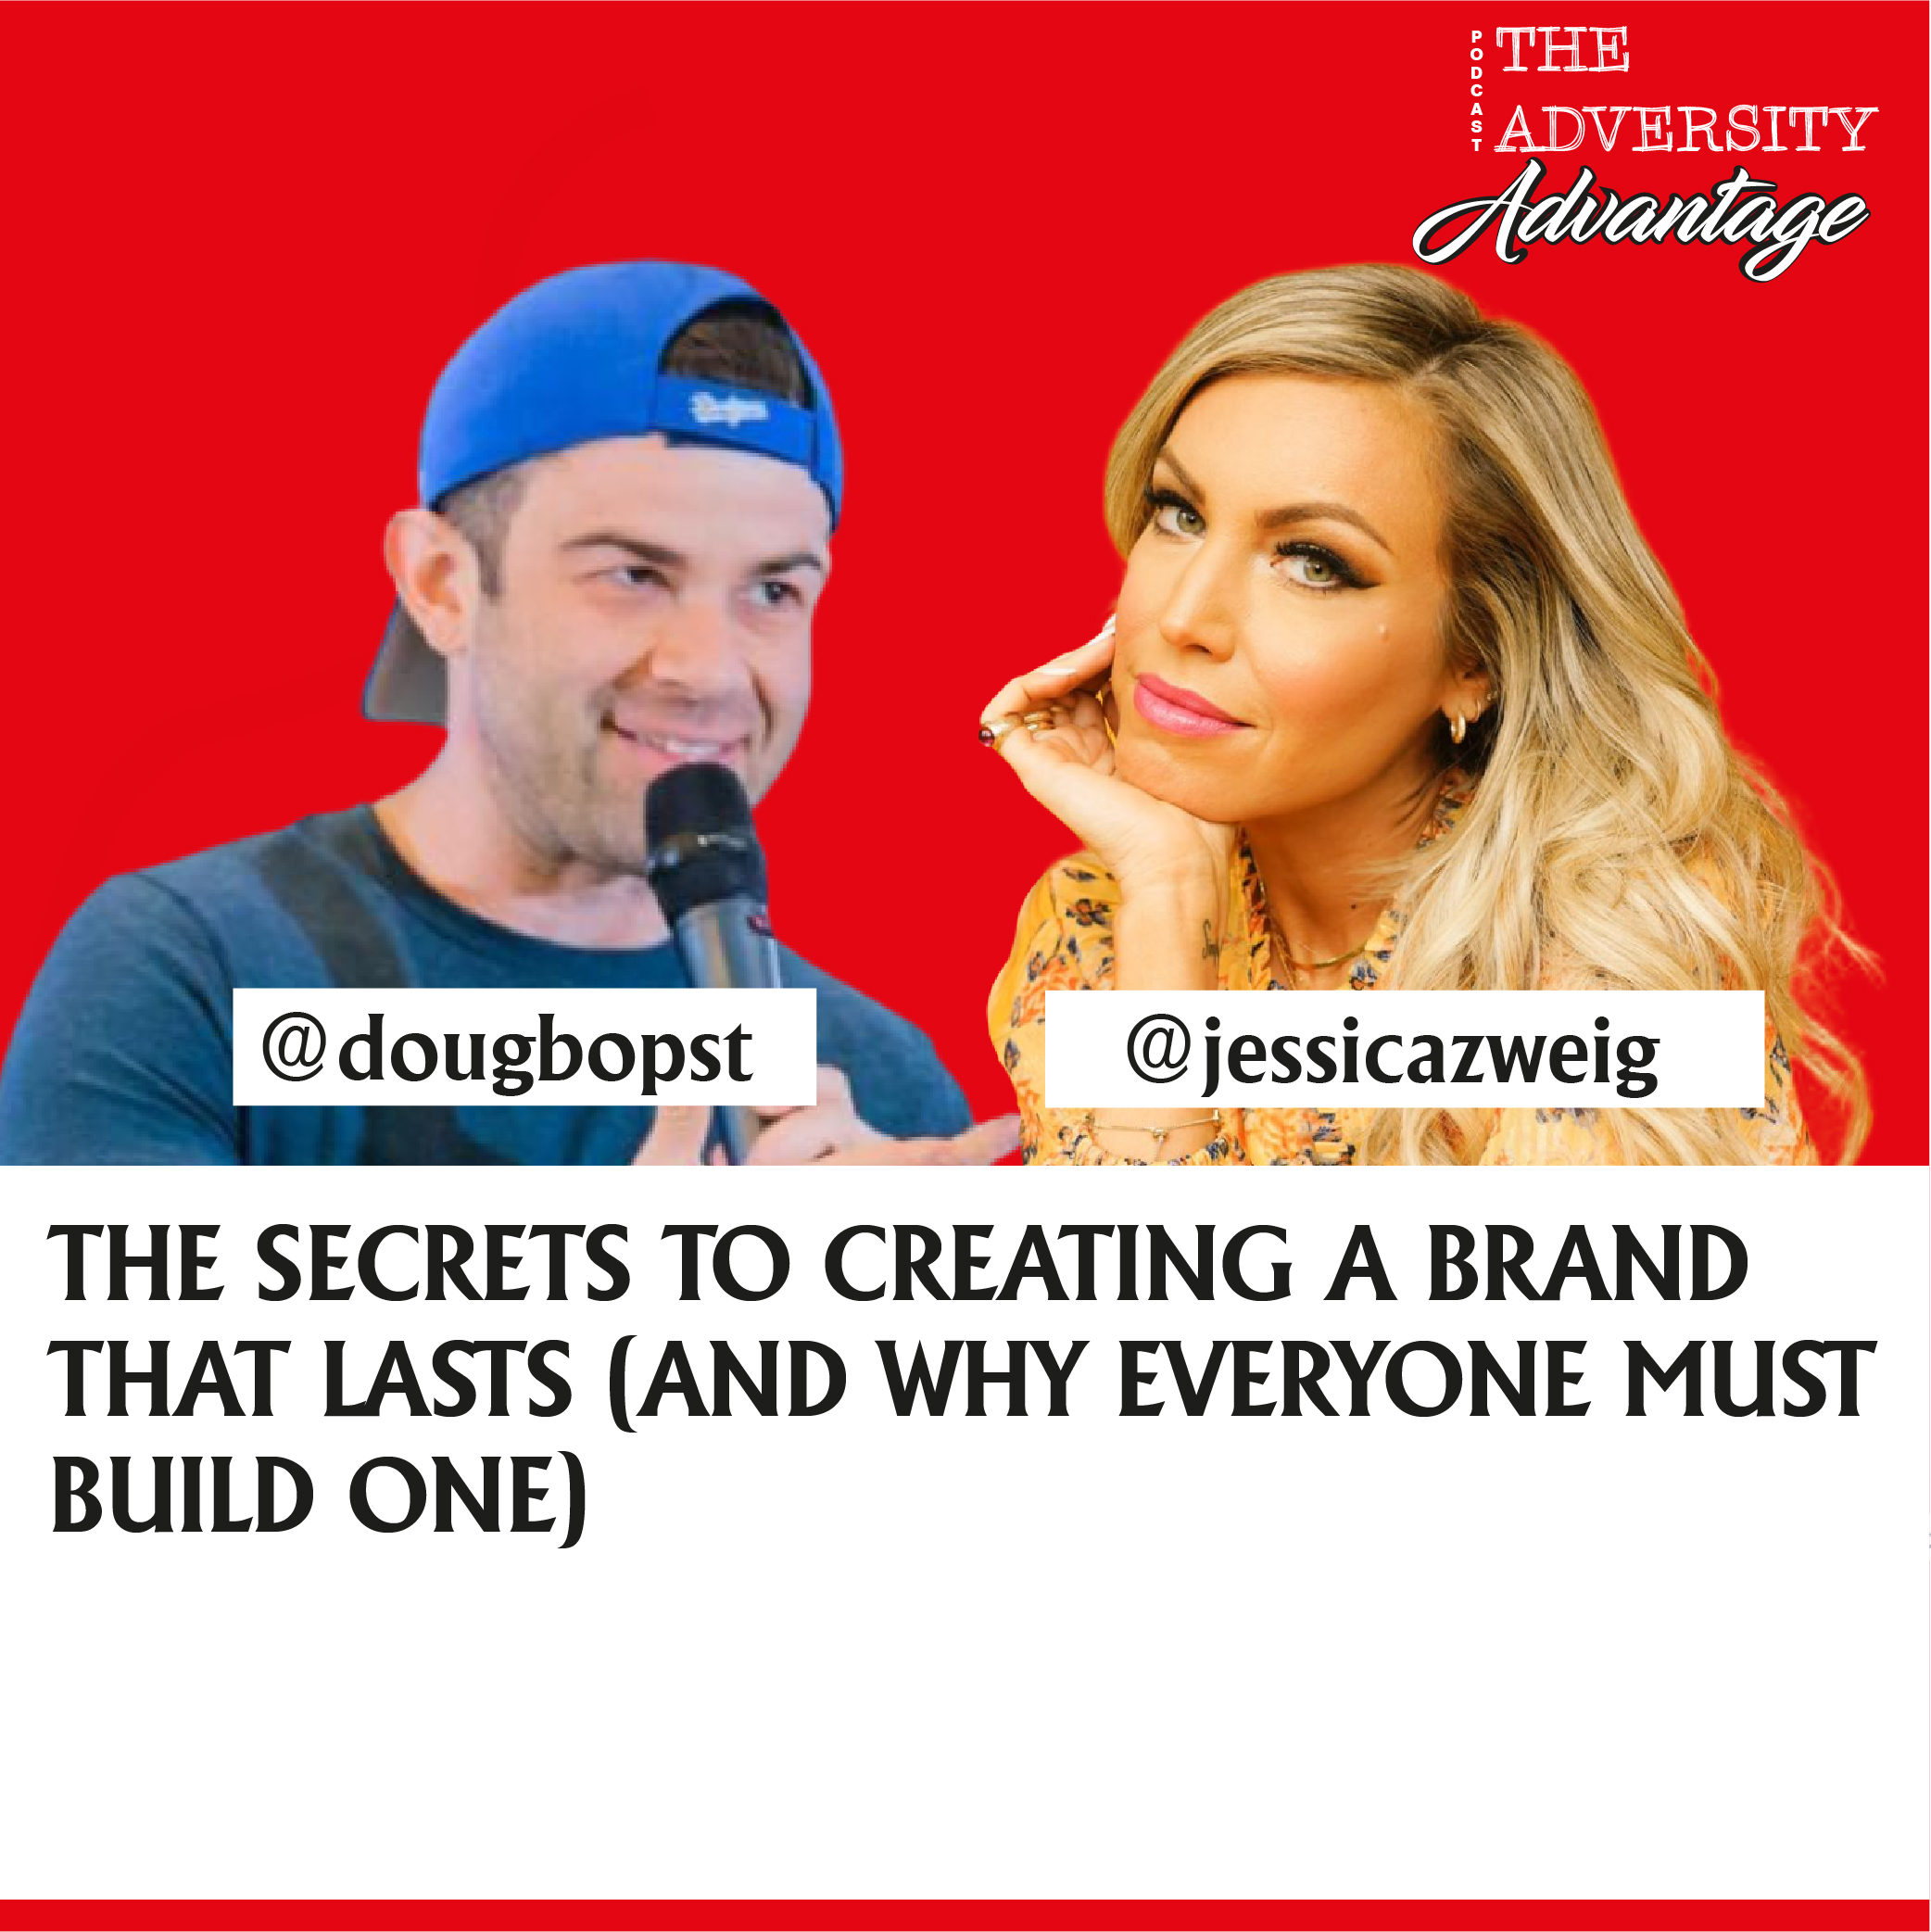 Jessica Zweig on The Secrets To Creating a Brand That Lasts (And Why Everyone Must Build One)